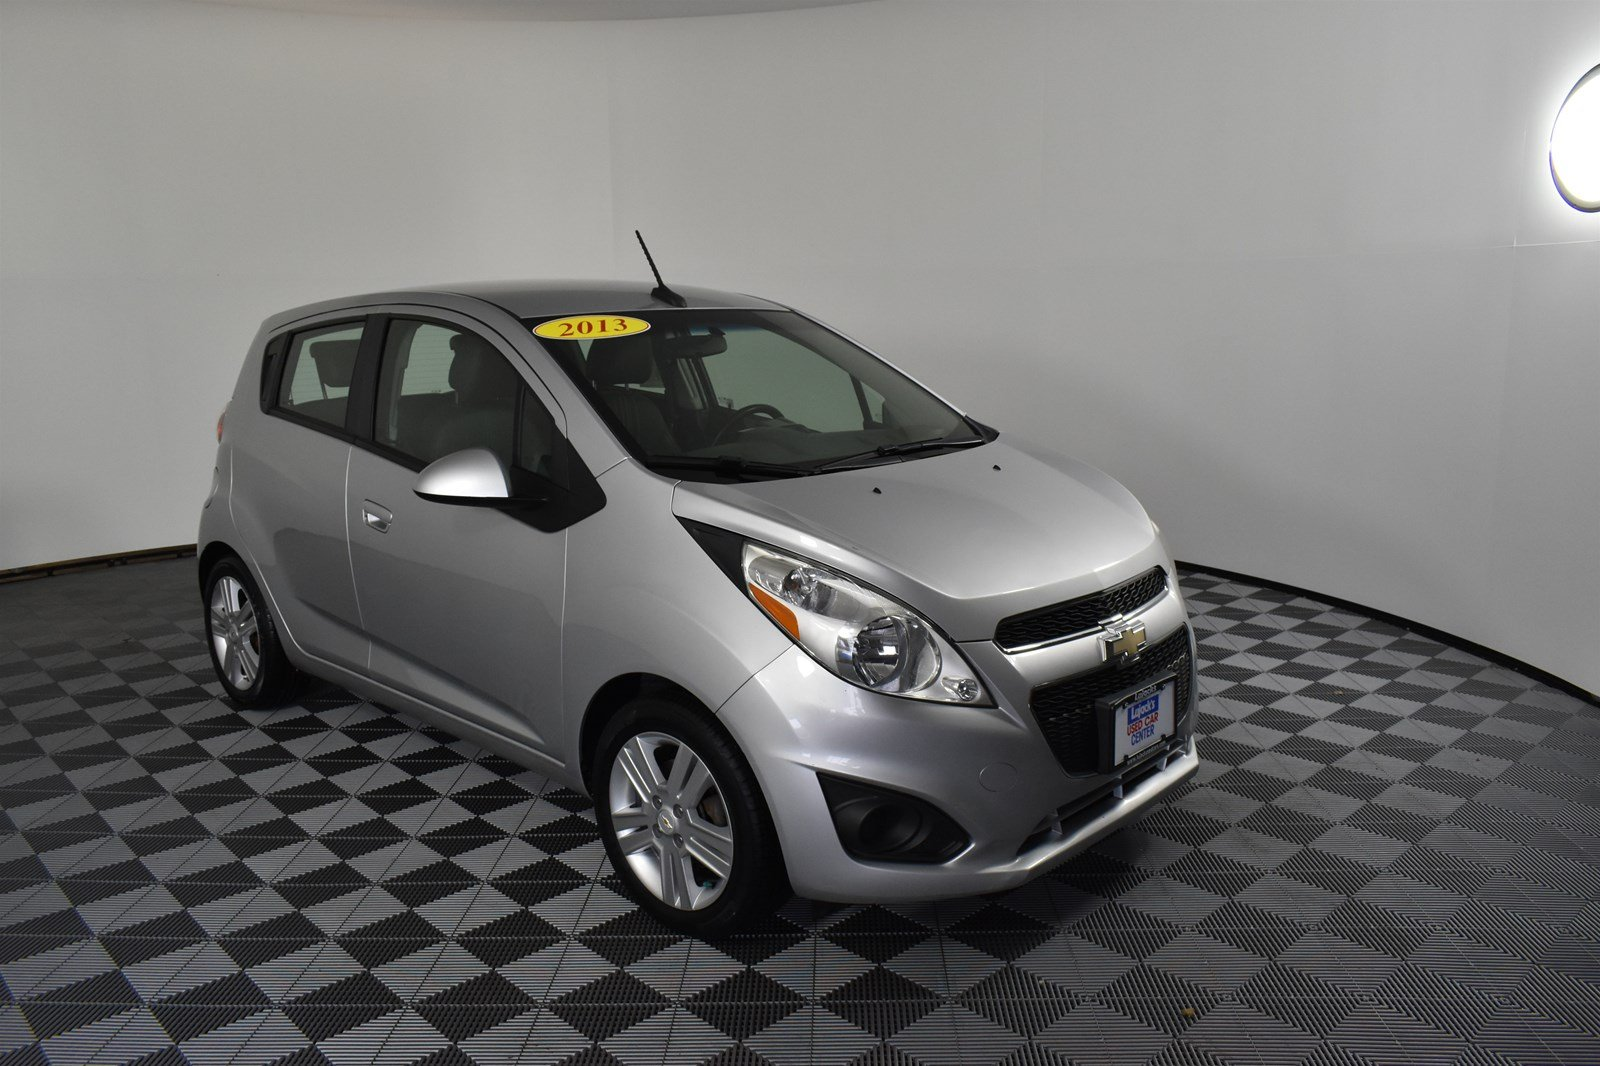 Pre-Owned 2013 Chevrolet Spark LS